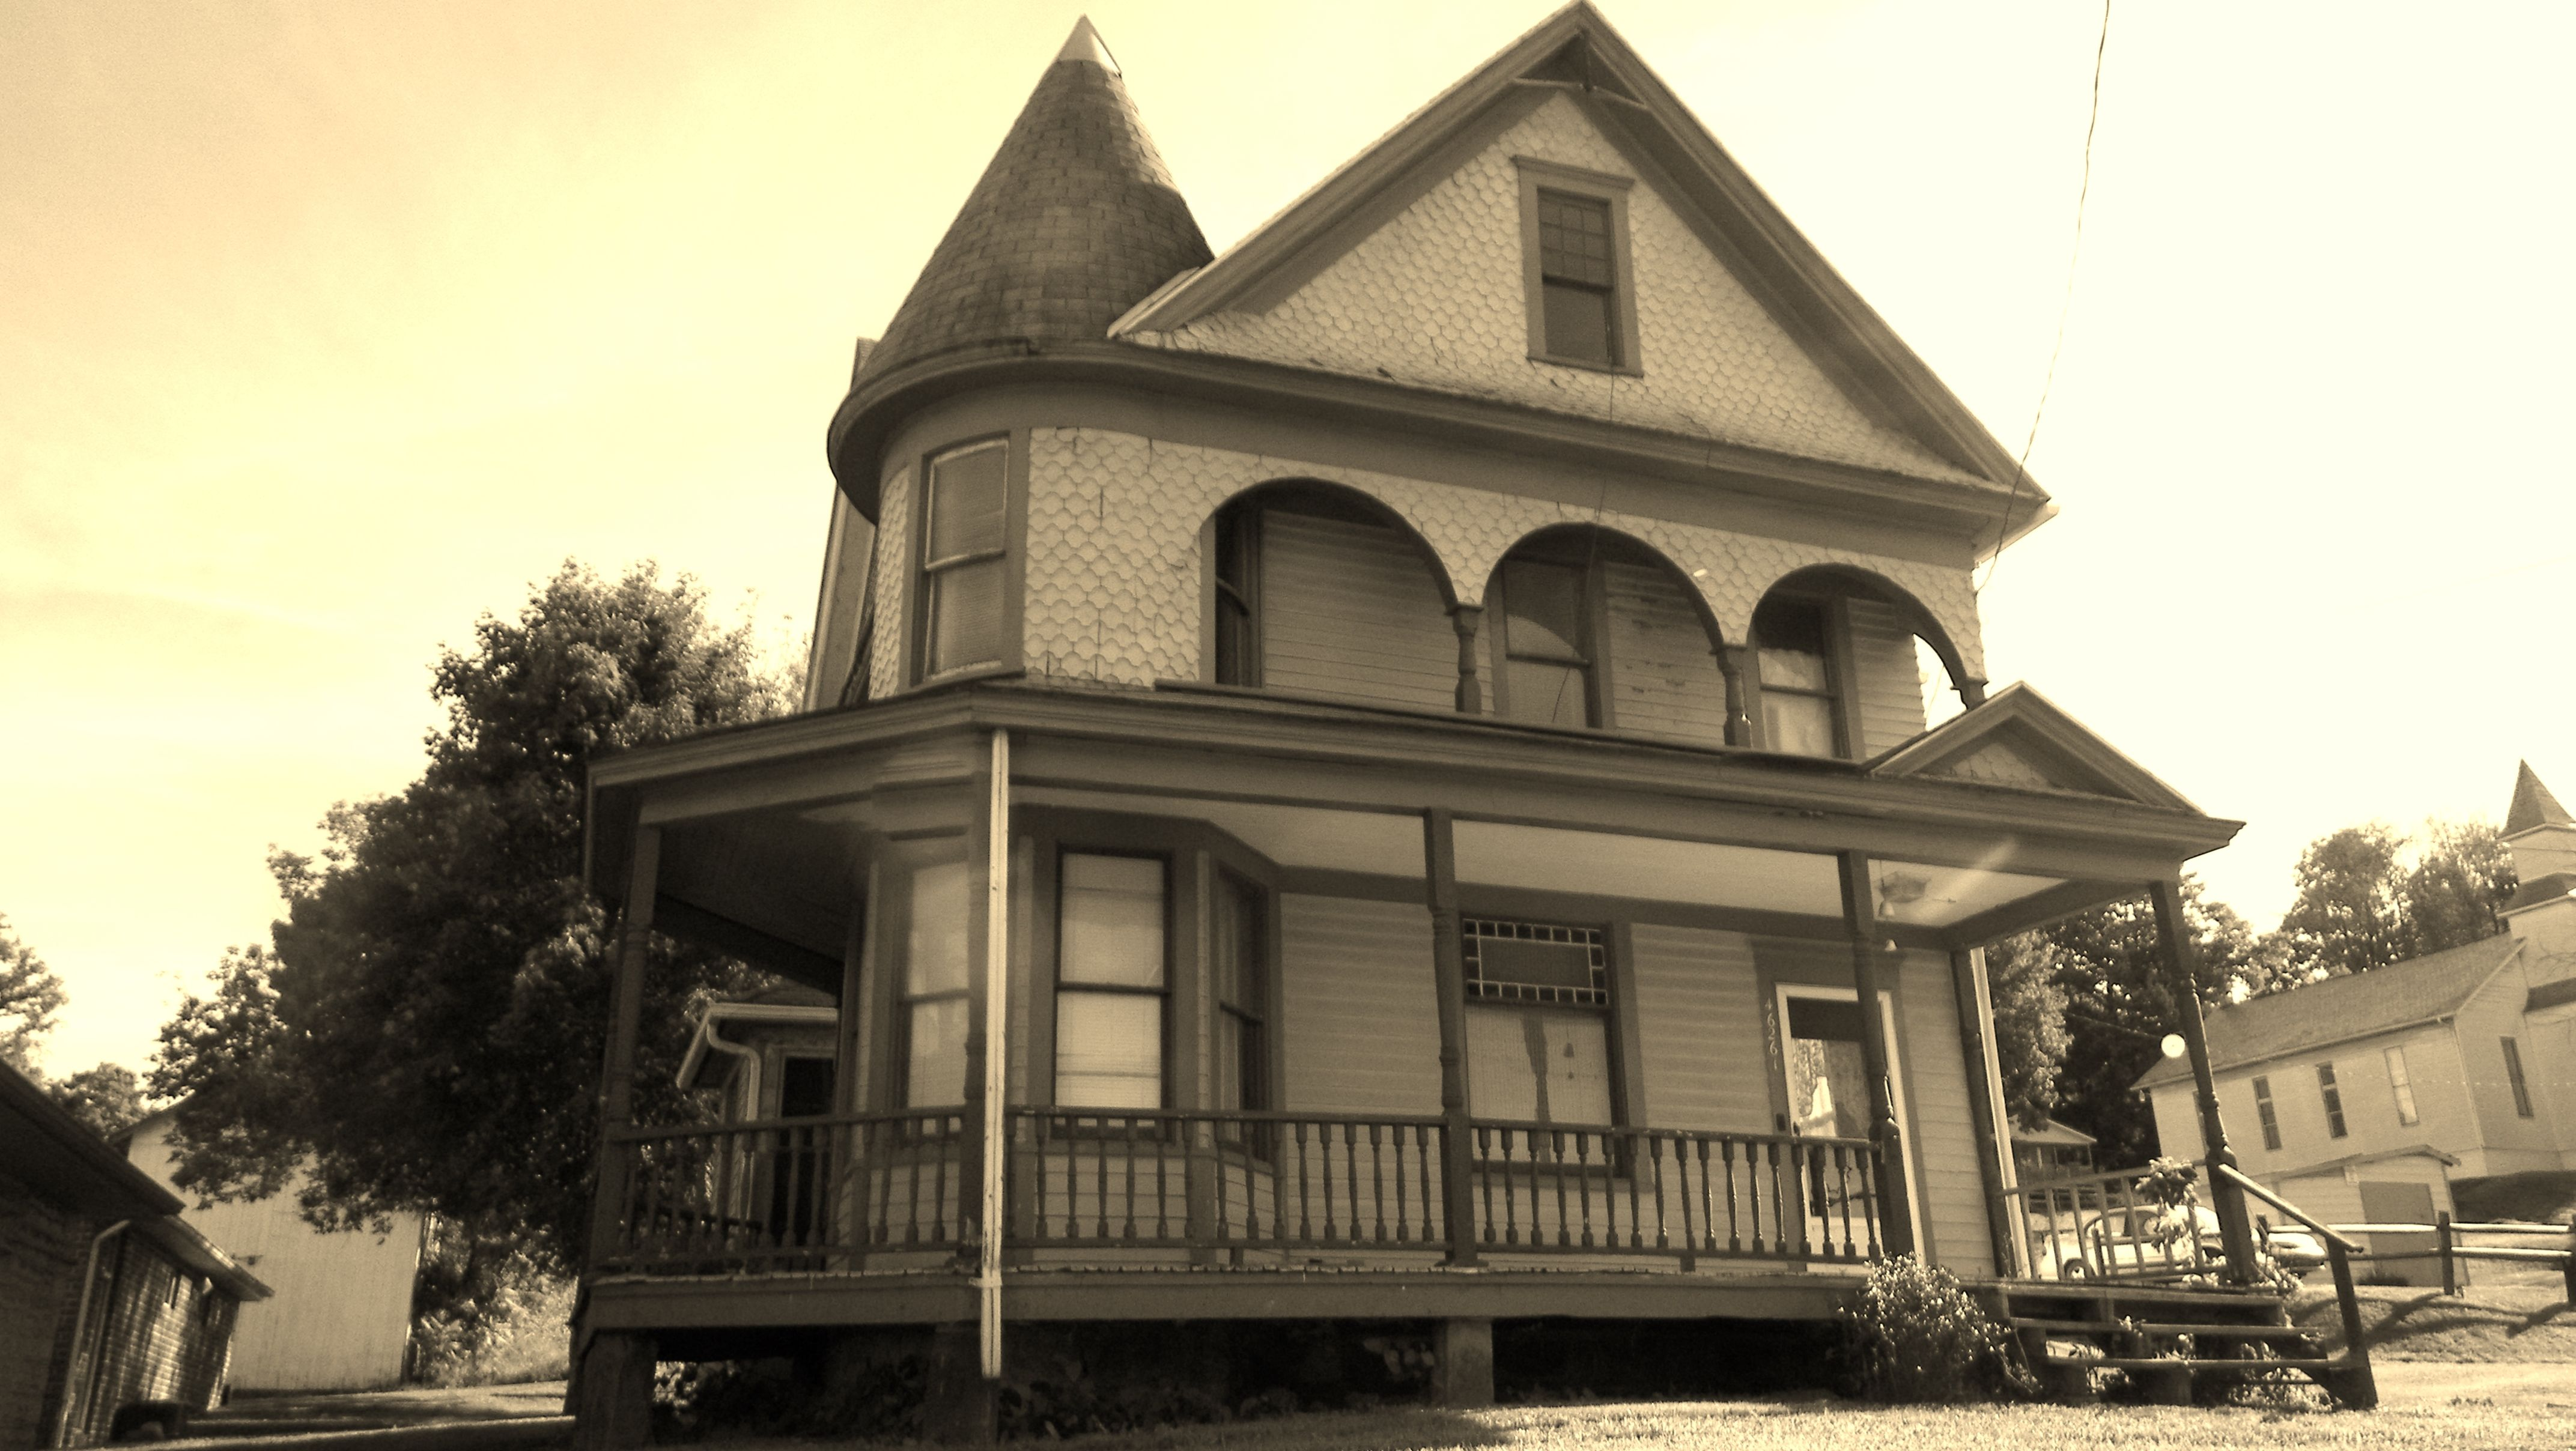 Ohio columbiana county rogers - This Is A House In Rogers Ohio Built In 1895 The Attic And